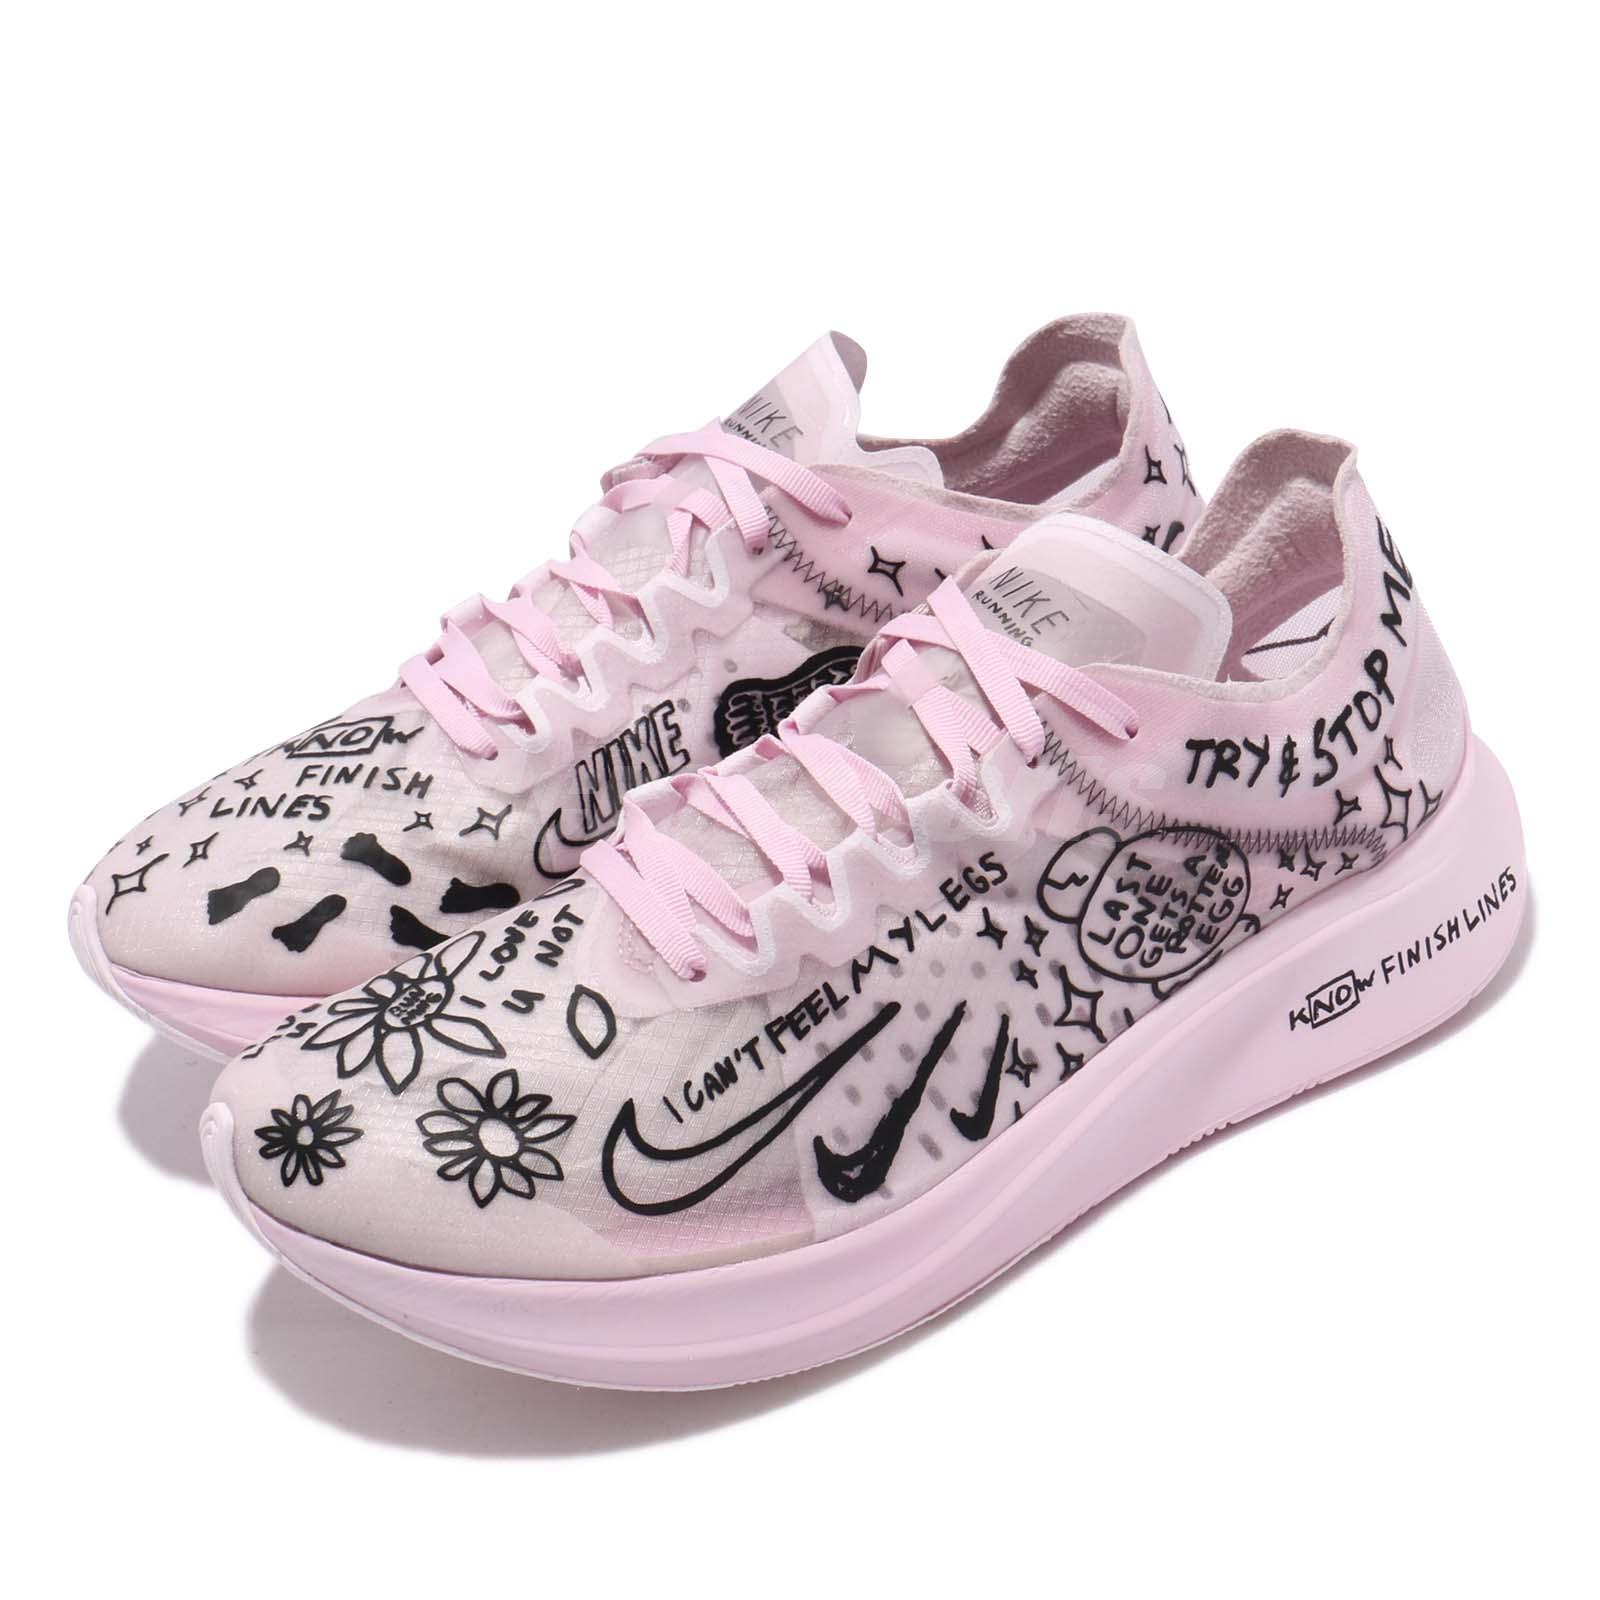 bc15e6c6c3828 Details about Nike Zoom Fly SP Fast X Nathan Bell Pink Foam Black Men  Running Shoes AT5242-100